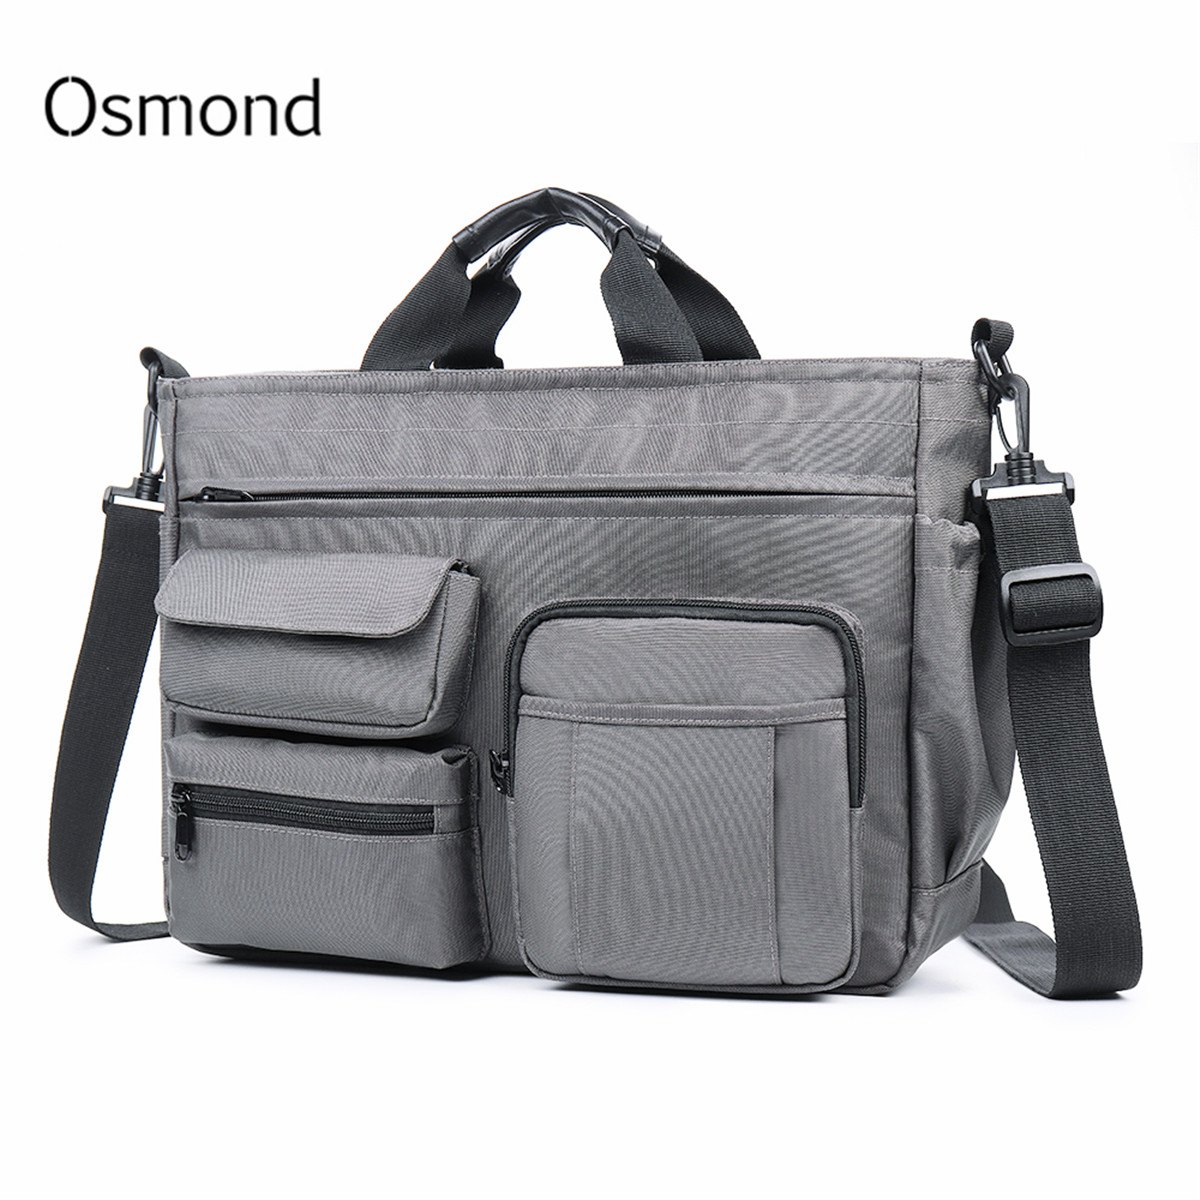 Osmond Fashion Office Bags For Men Nylon Waterproof Briefcase 14 Inch Laptop Tote Bag Multi-pocket Male Business Messenger Bags